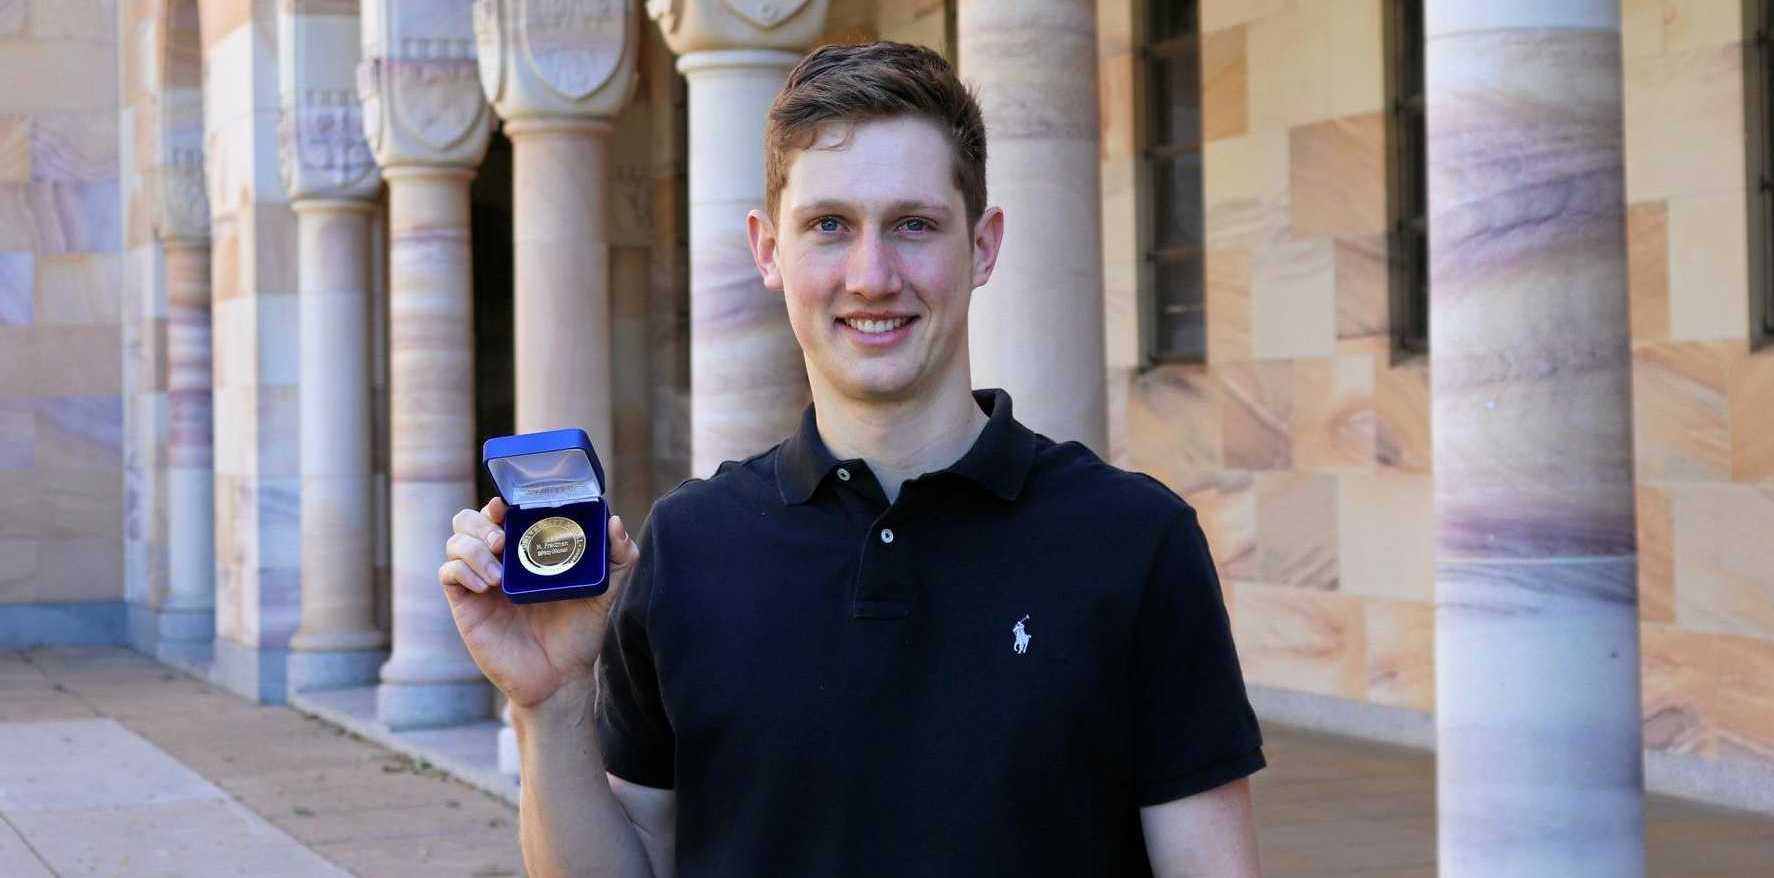 TOP MARKS: Gilldora's Henry Fredman has won a University Medal from UQ for outstanding academic achievement in the field of physiotherapy.